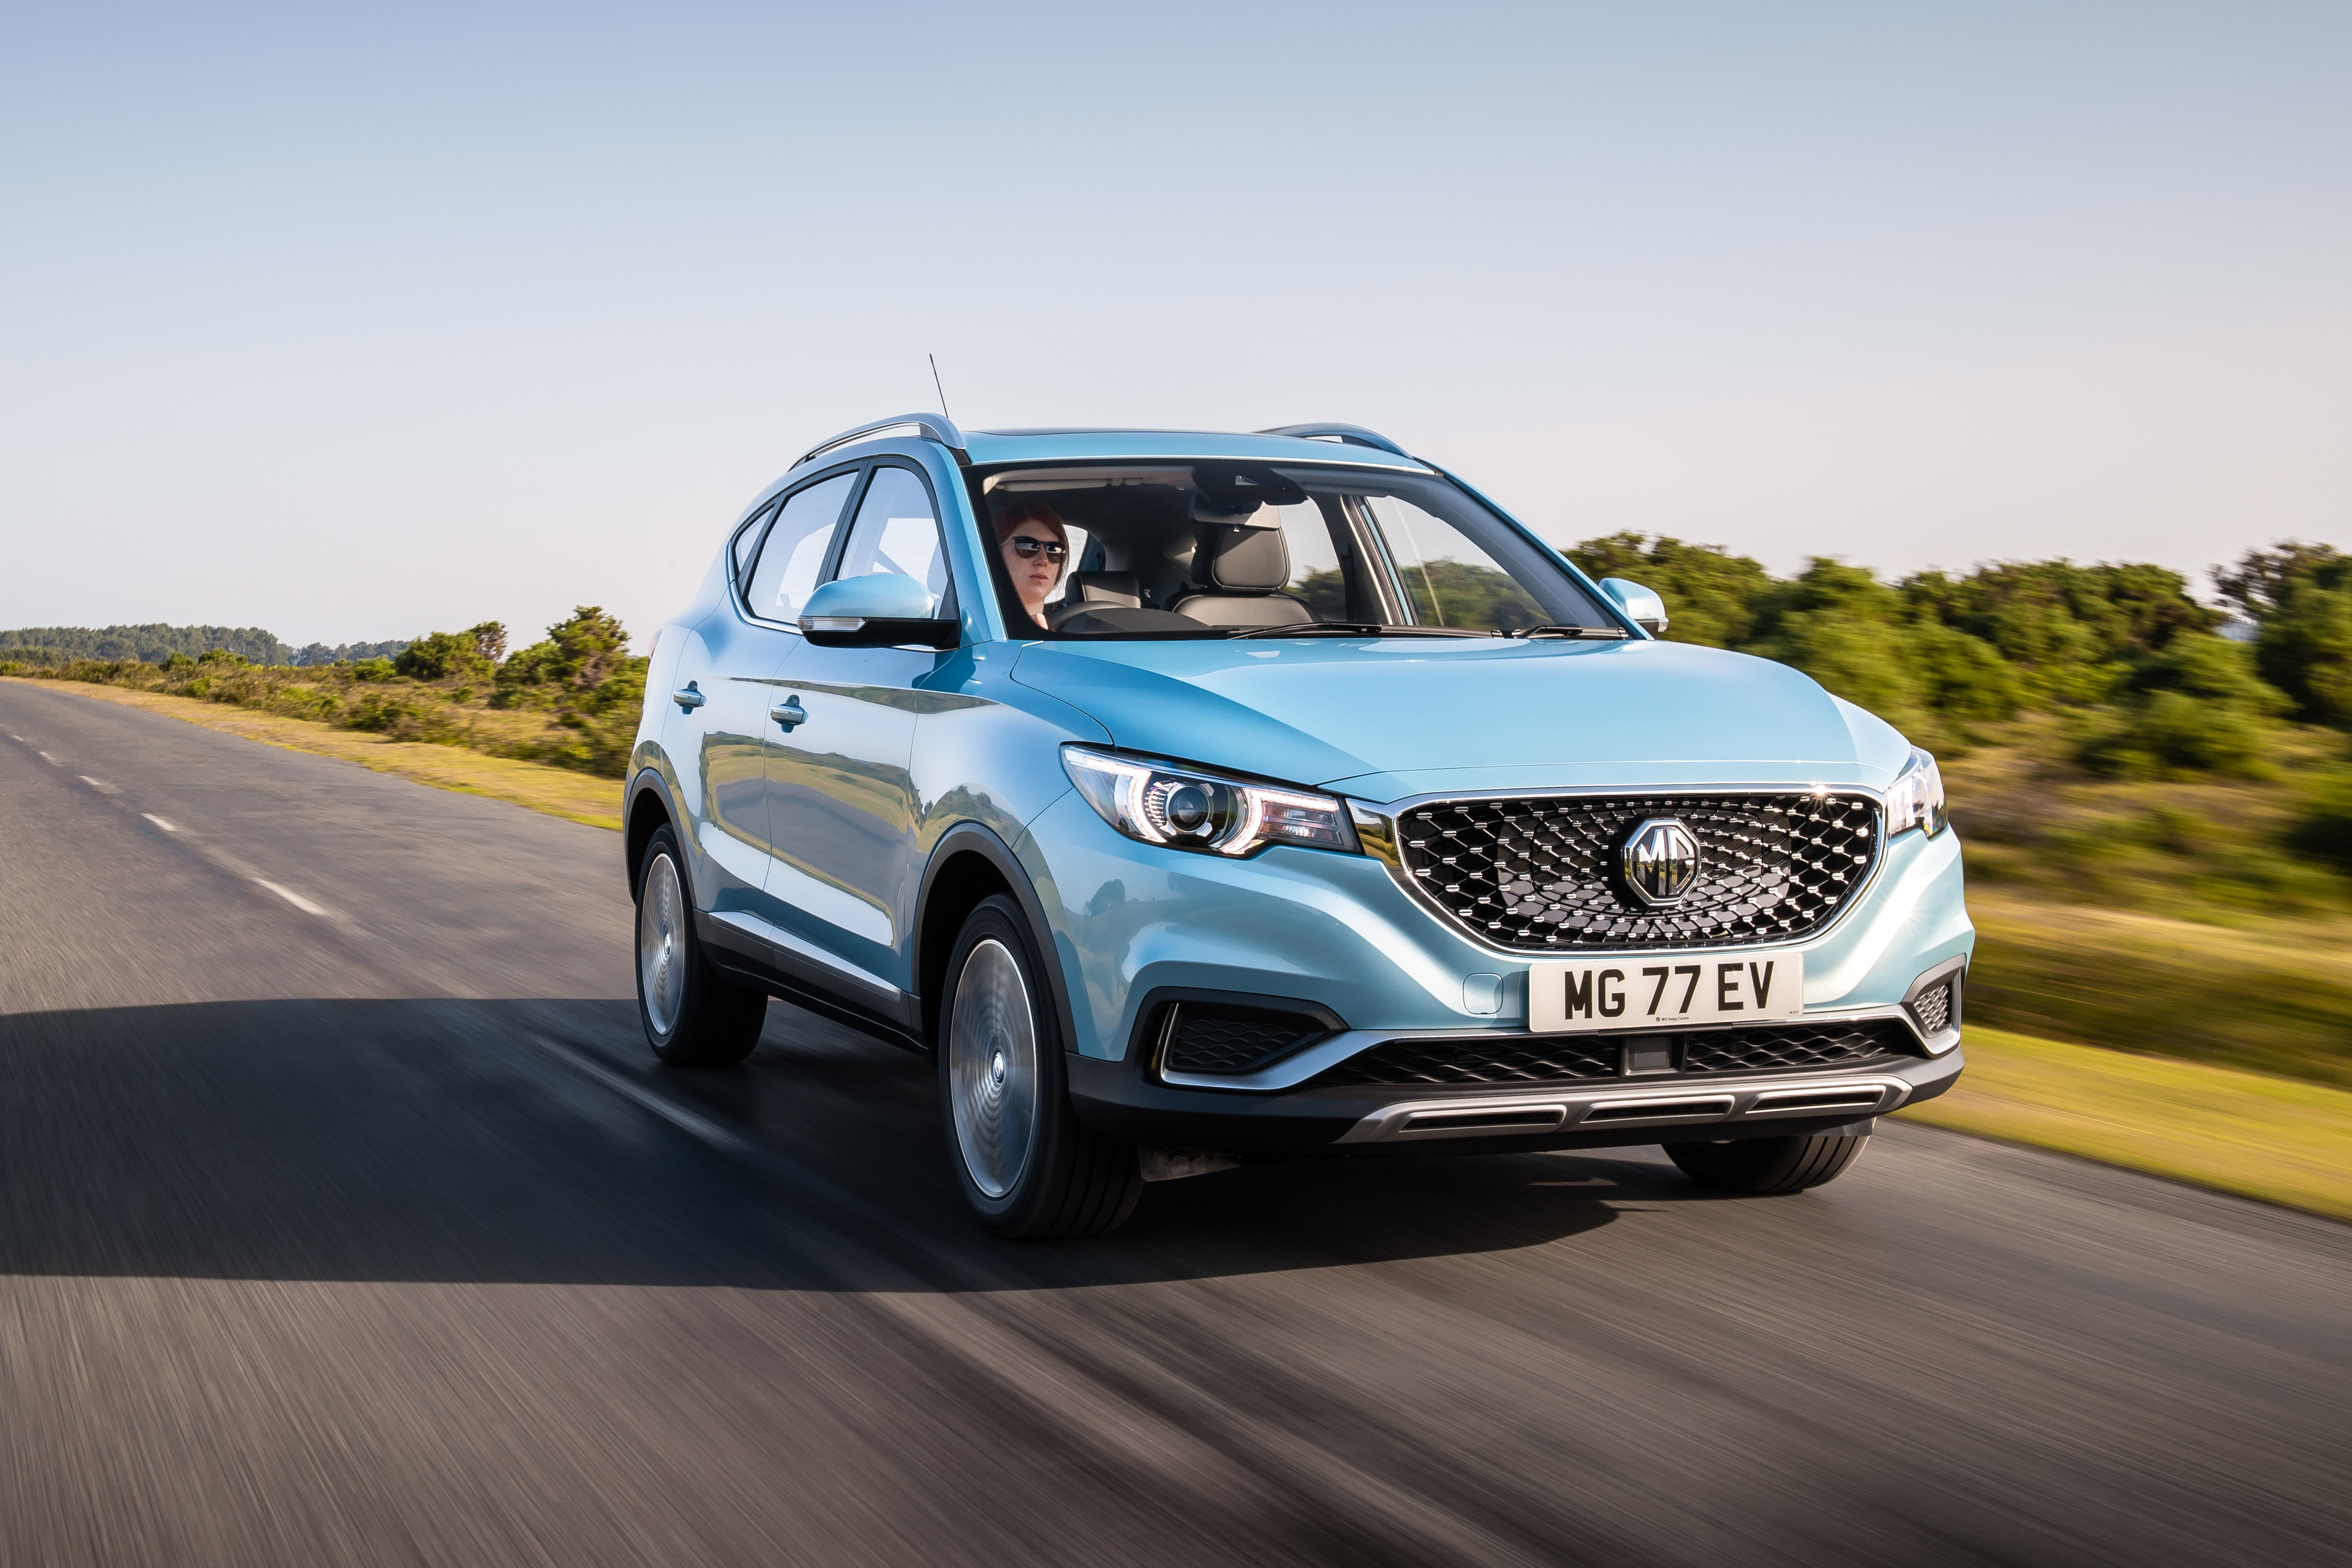 Its all-electric motor is capable of generating 148bhp of power. (Photo courtesy: mg.co.uk)